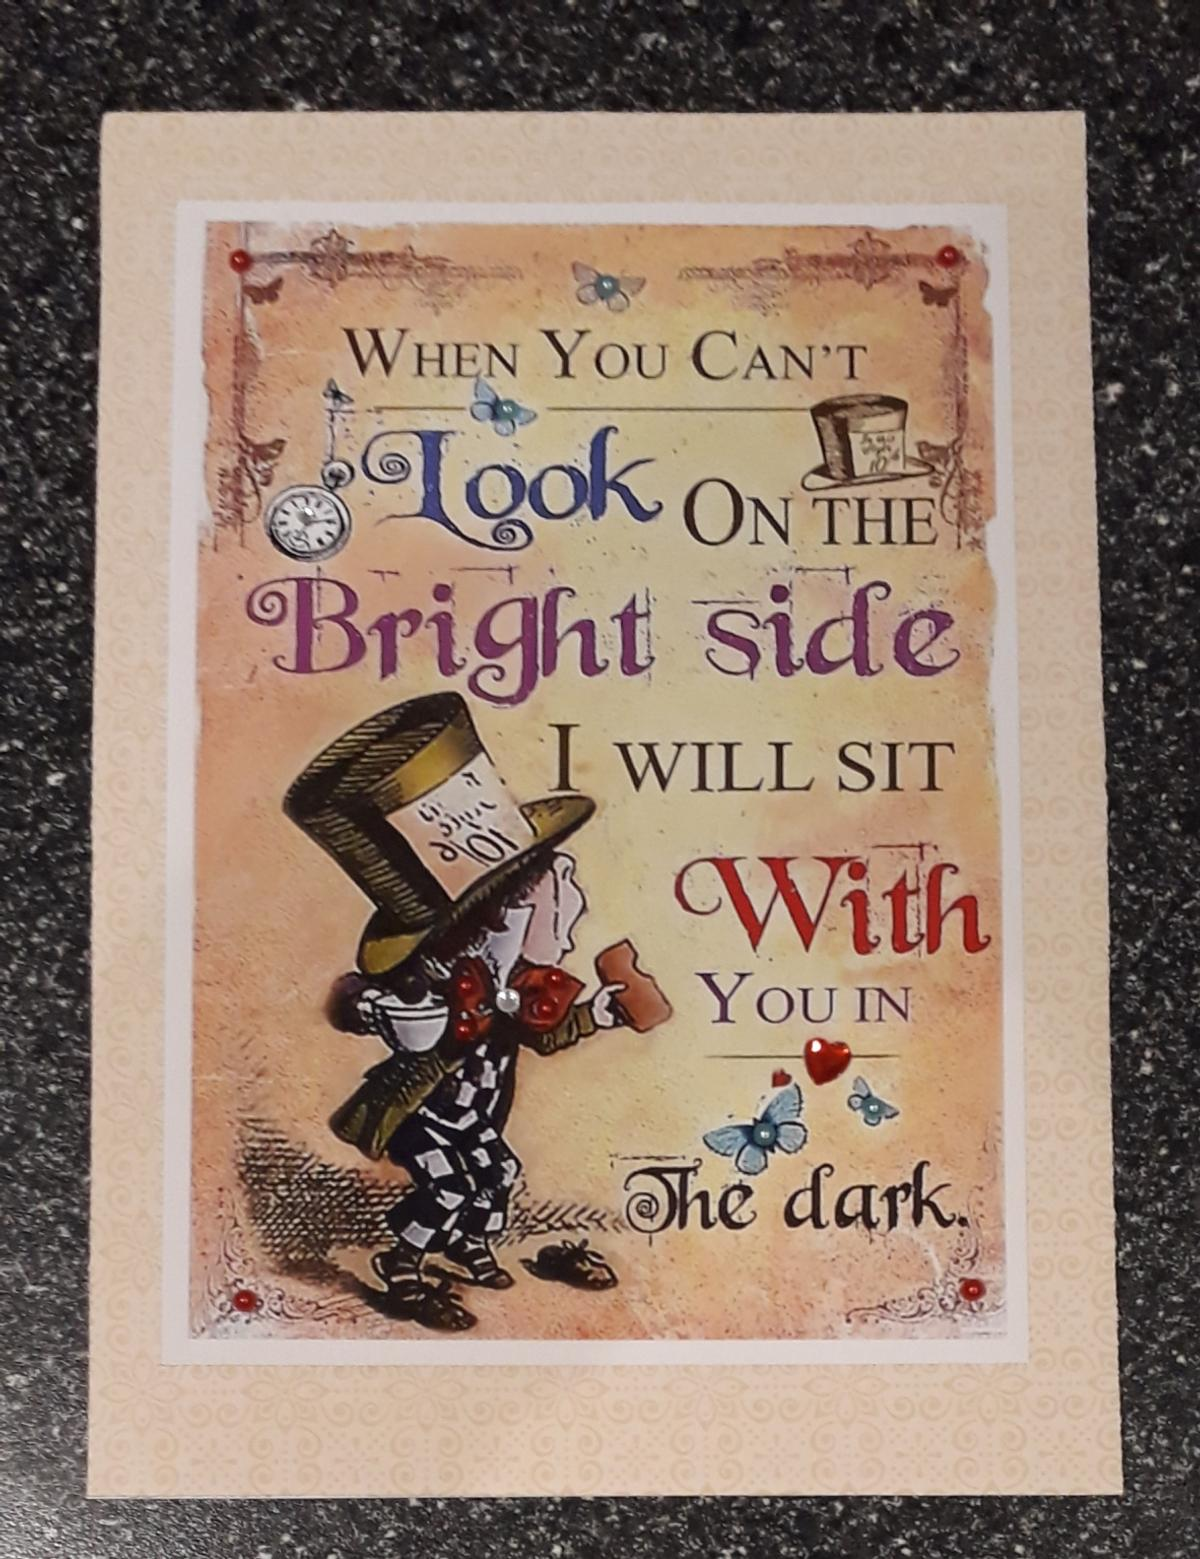 *POSTAGE IS AVAILABLE* A HANDMADE CARD ALICE IN WONDERLAND INSPIRED QUOTE.. BLANK INSIDE FOR YOUR PERSONAL MESSAGE. COMES IN A SEALED PROTECTIVE BAG.